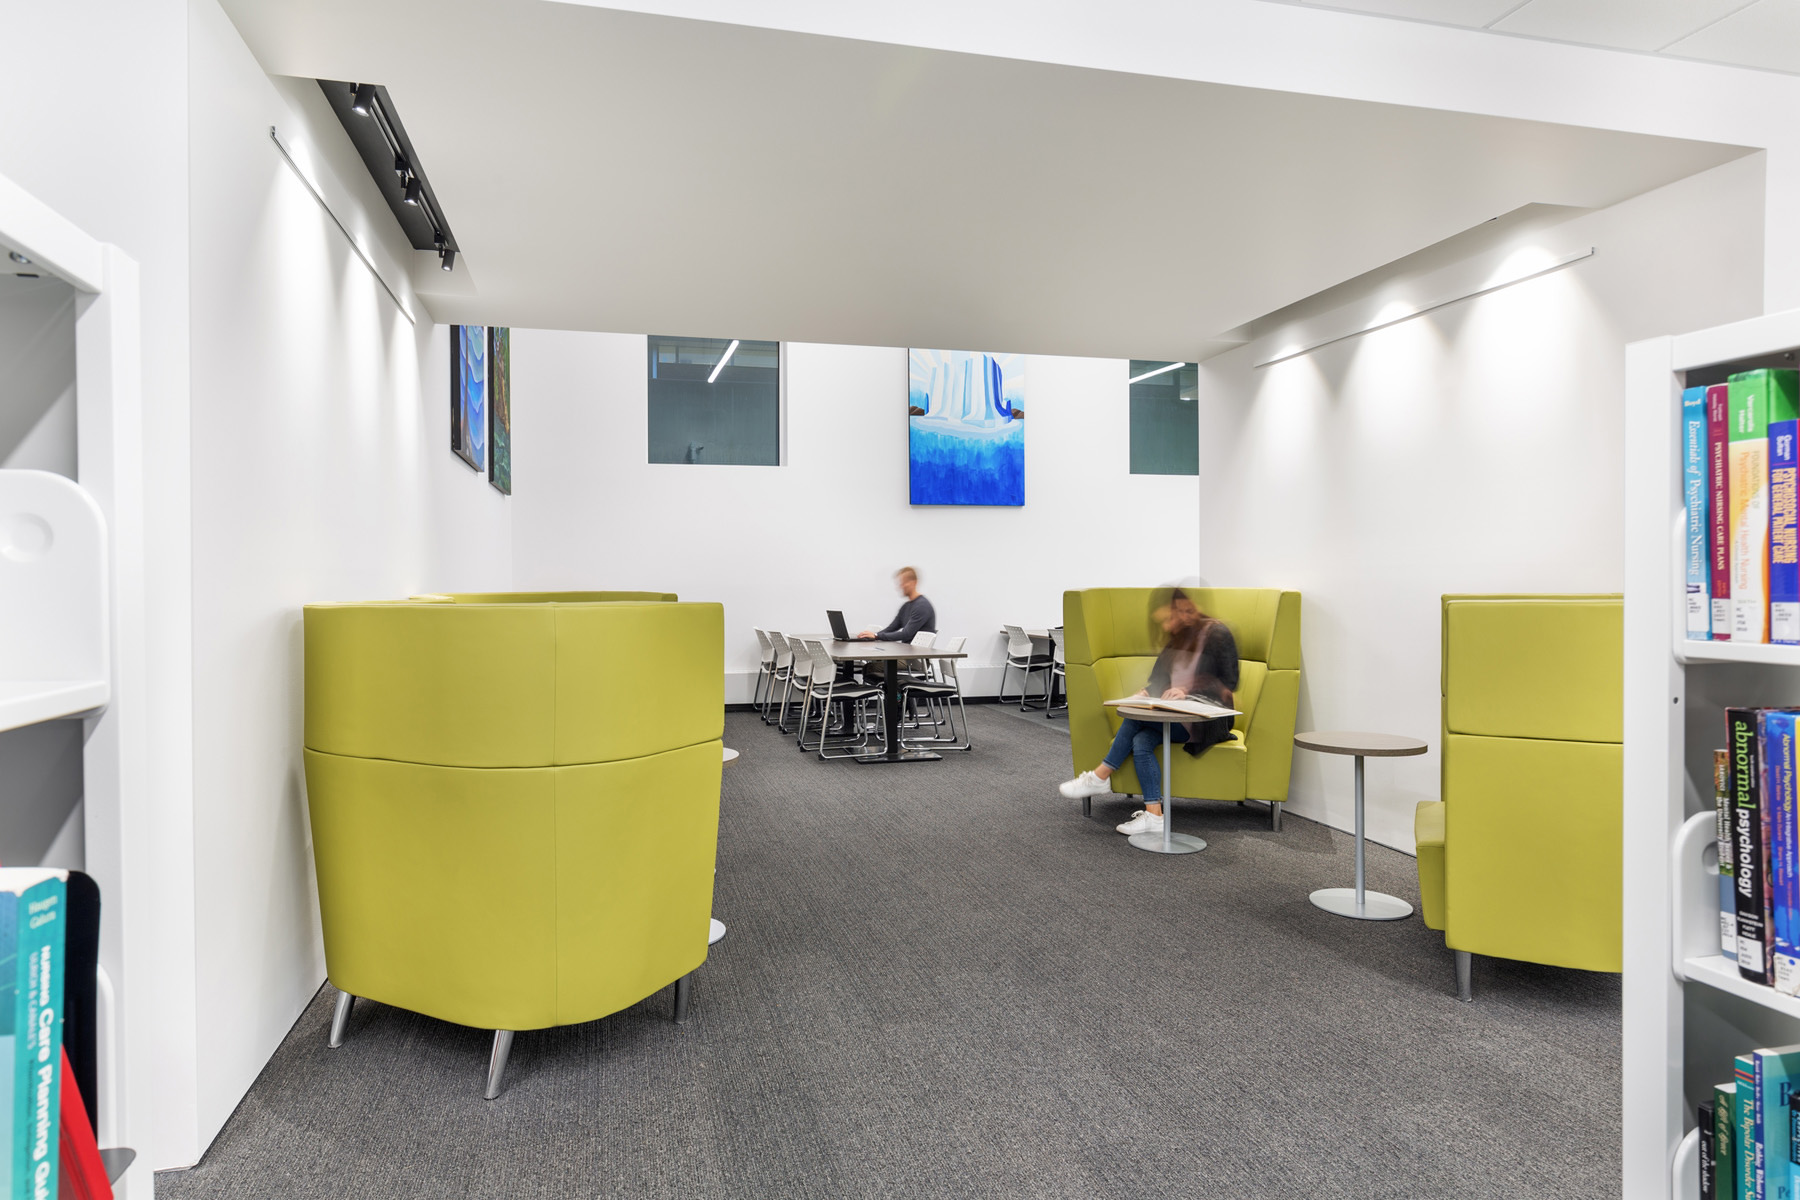 Student studying on high back lime green armchair with group study tables in background